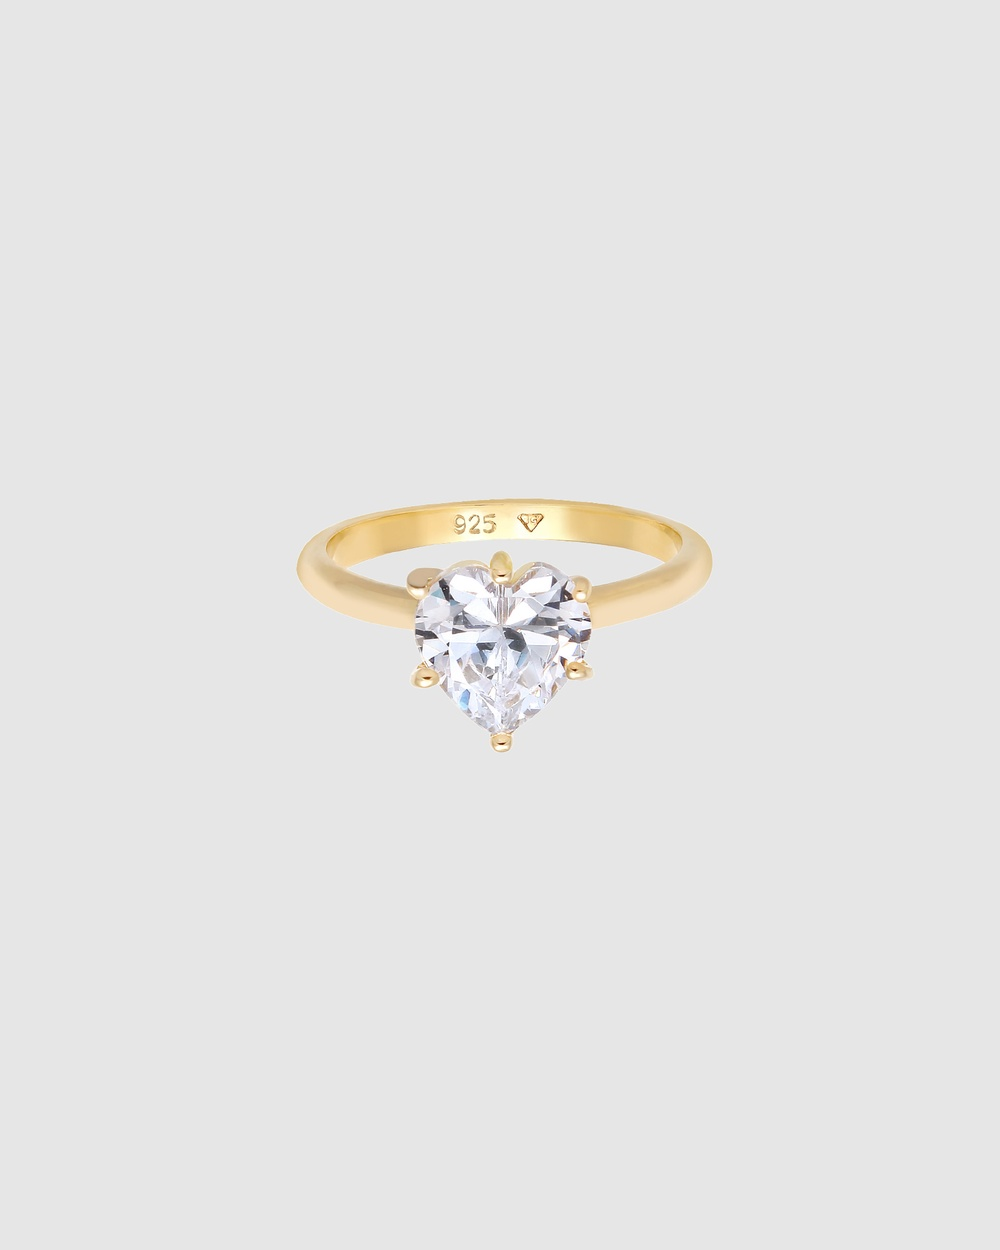 Elli Jewelry Ring Engagement Heart Zirconia Crystal Solitaire in 925 Sterling Silver Gold Plated Jewellery white